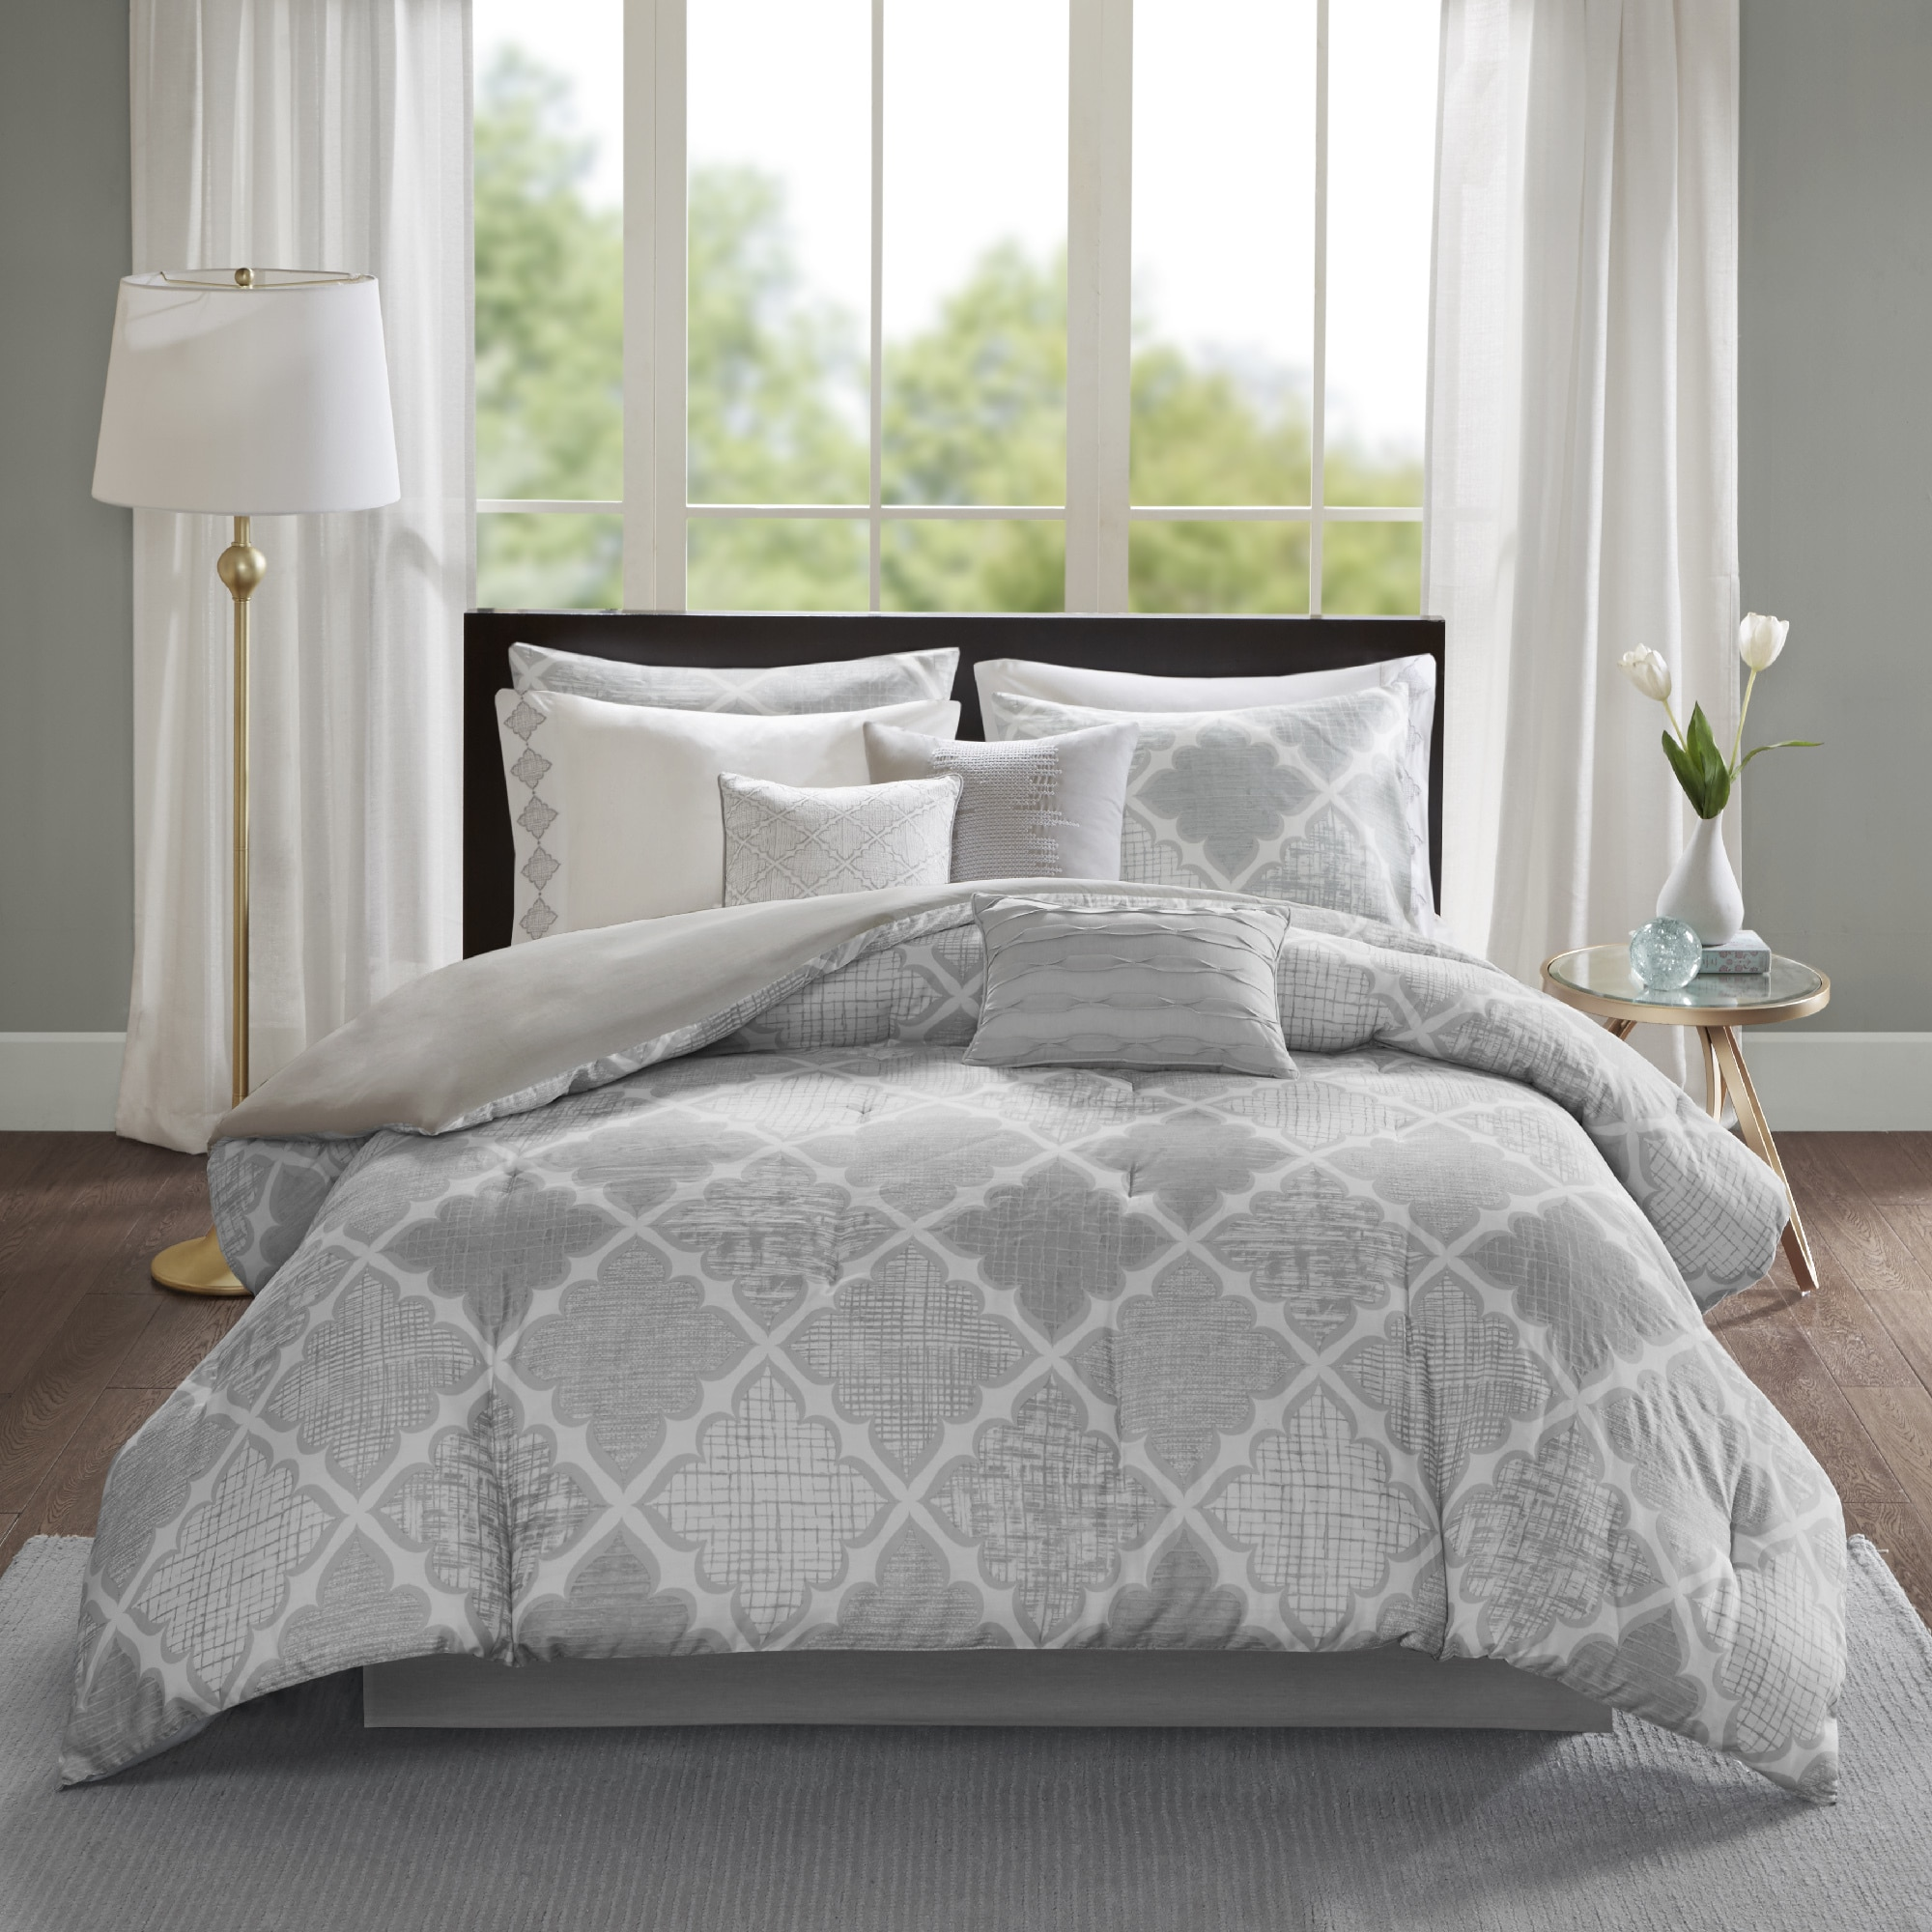 pdx set logan plaid reviews bed demetrius bath sateen piece wayfair comforter wade cotton